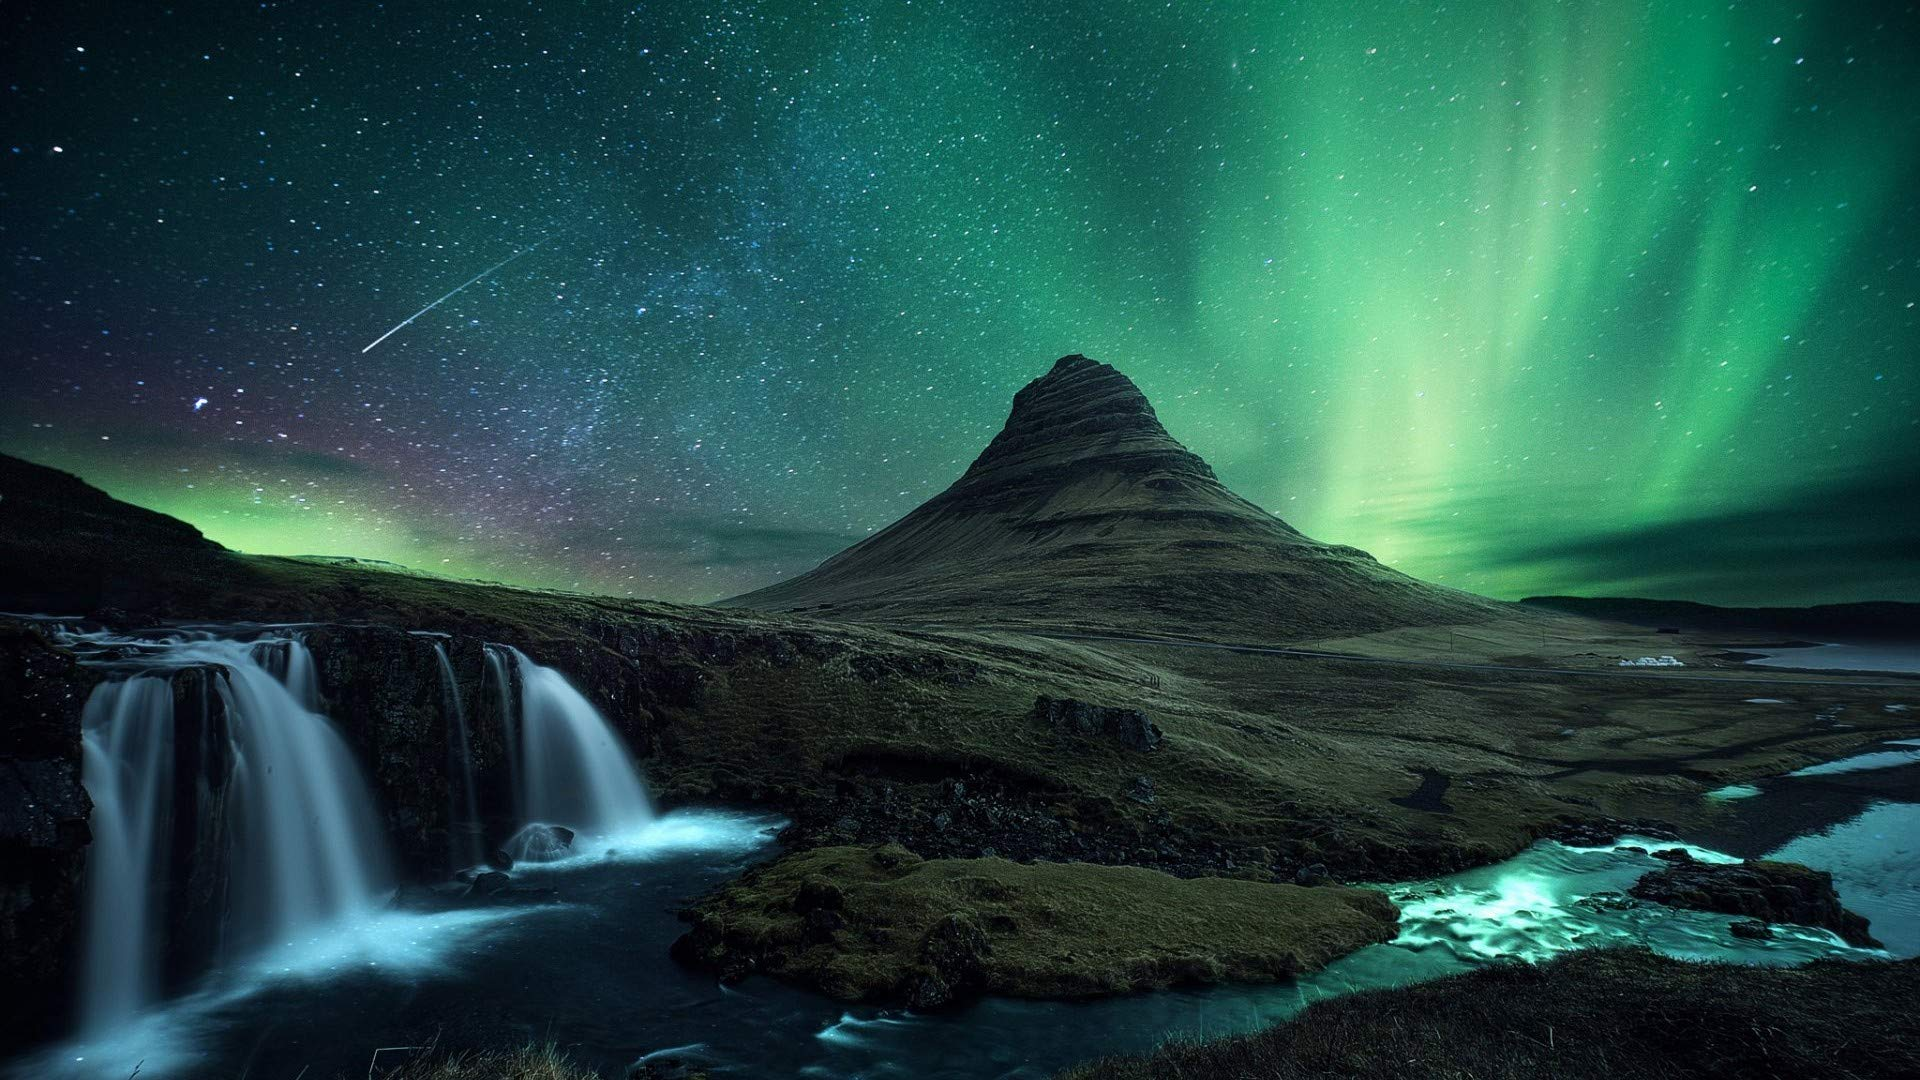 ZSFFSZ Jigsaw Puzzle 1000 Piece Iceland Volcano Rock Waterfall Night Star Northern Lights Gift Diy Modern Wall Art Unique Gift Home Decor